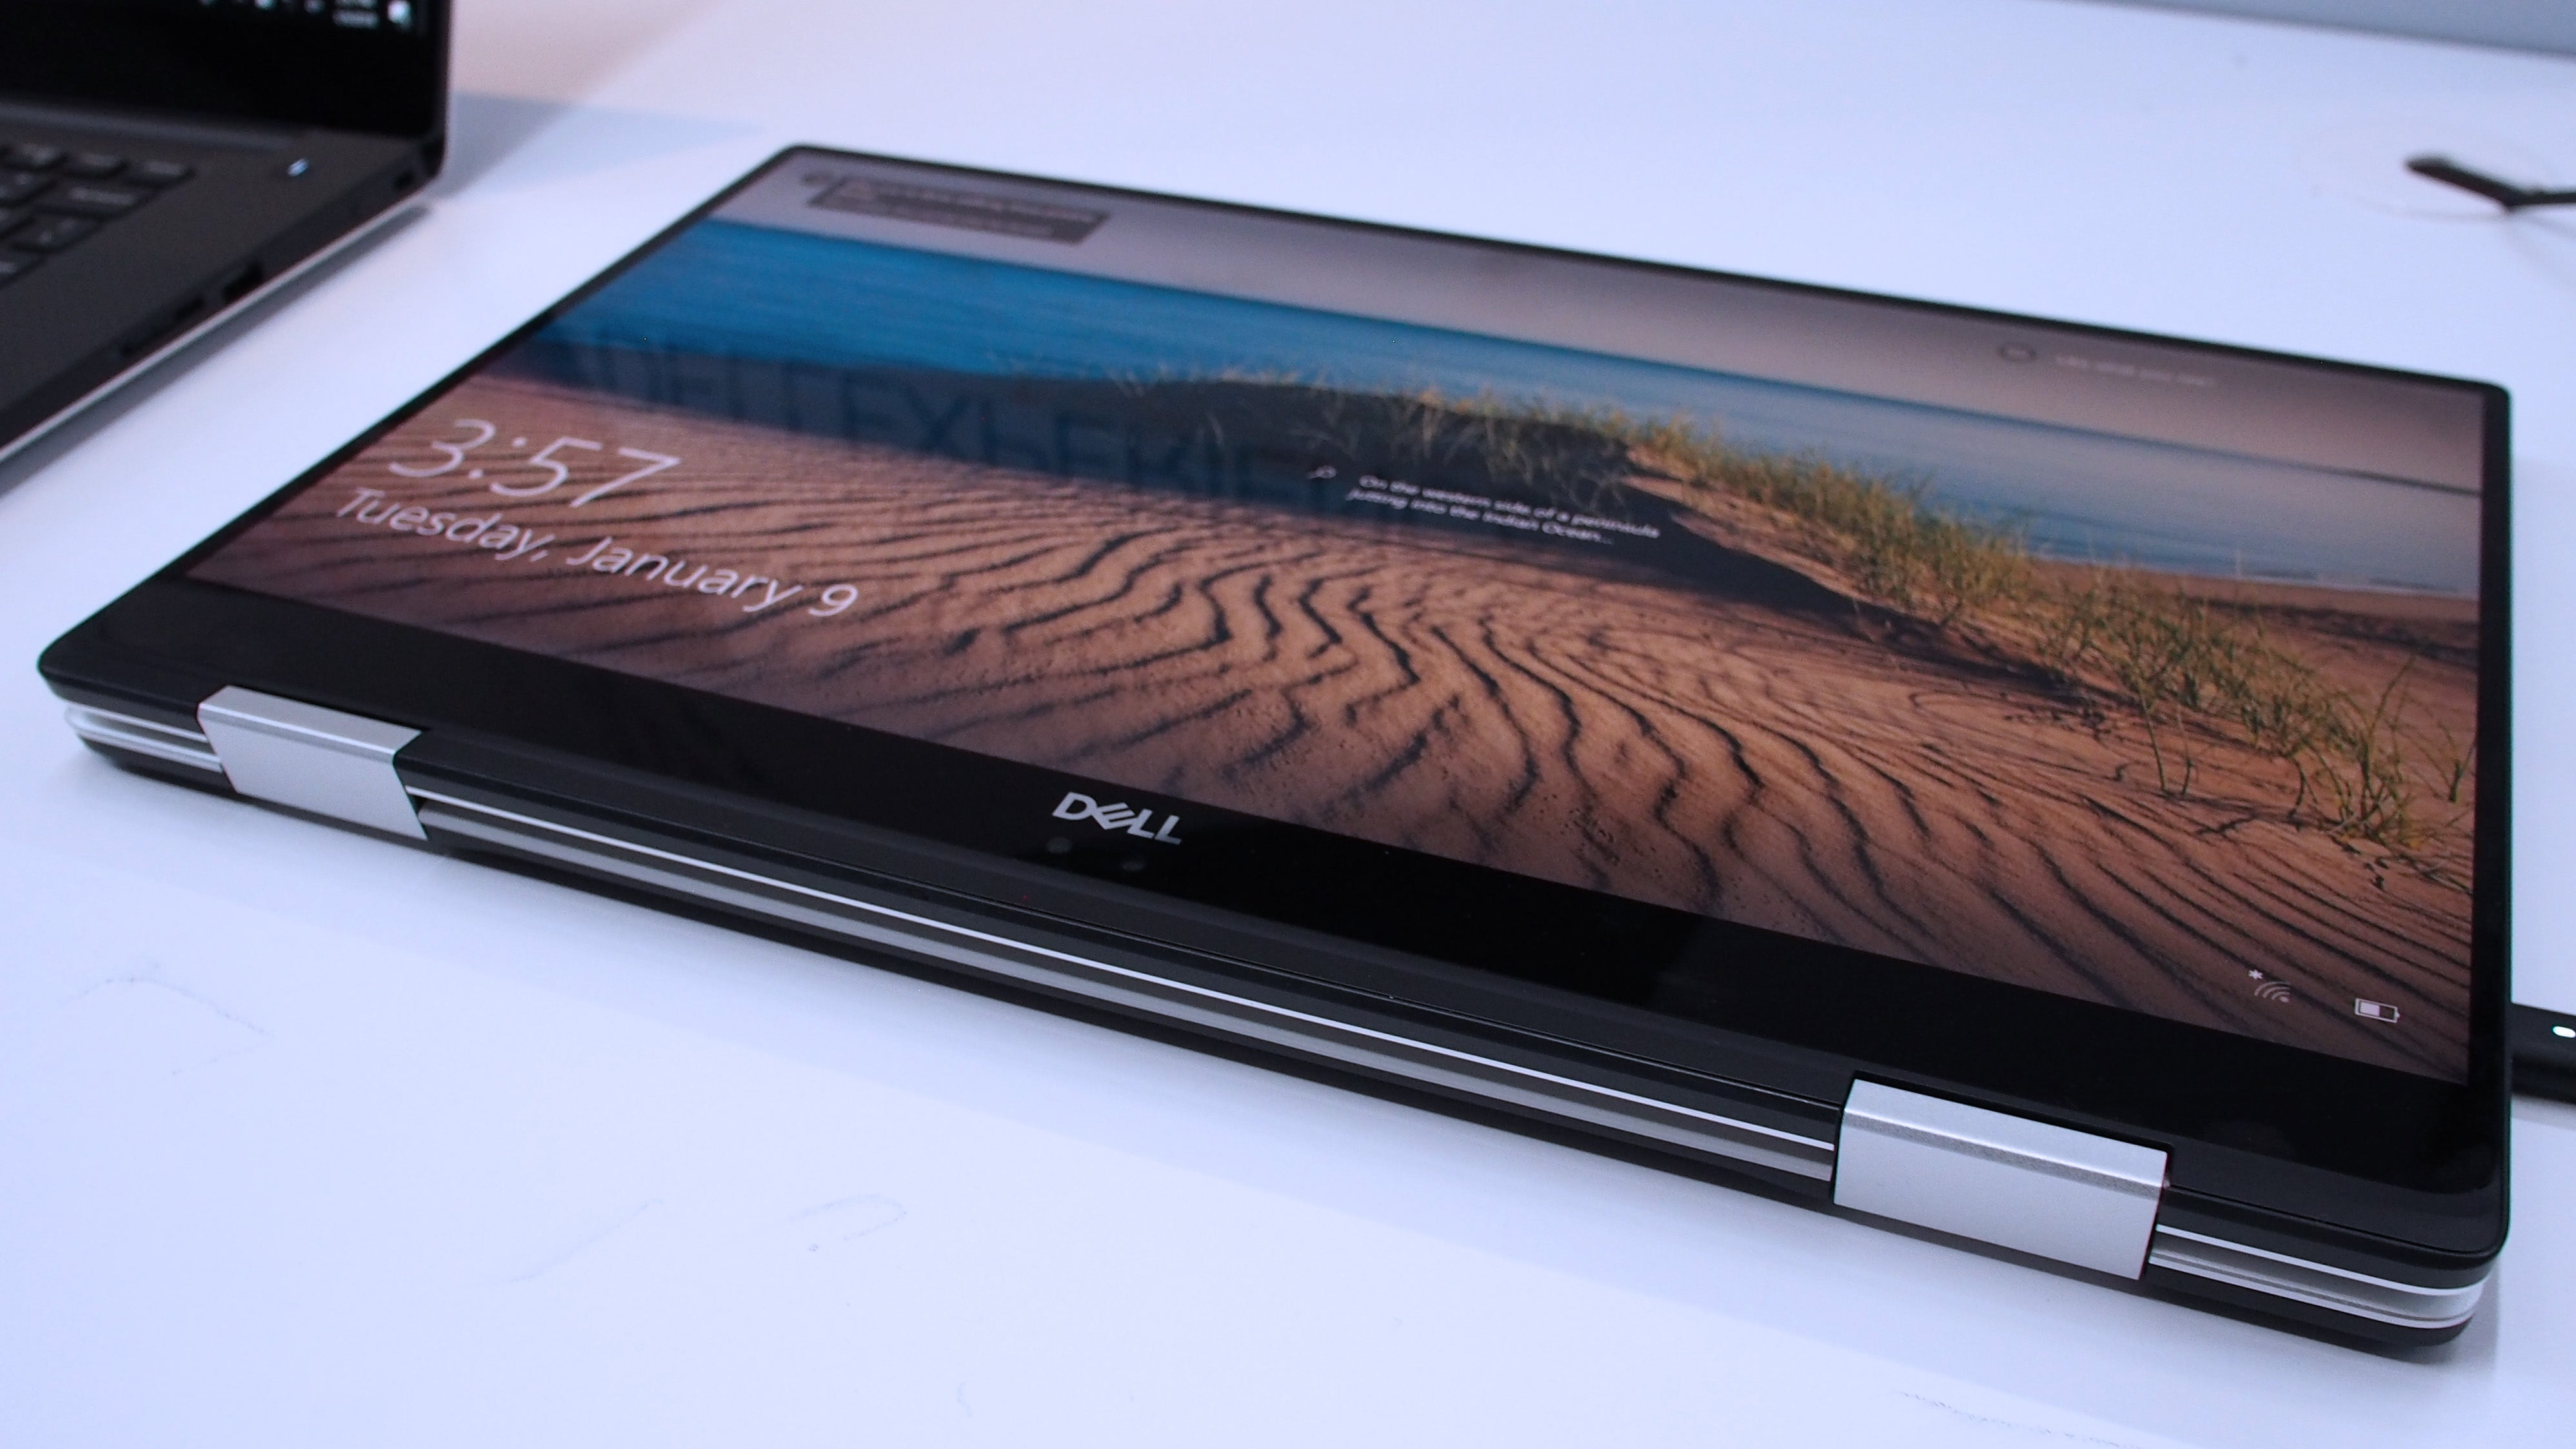 Dell XPS 15 2-in-1 graphic tablet